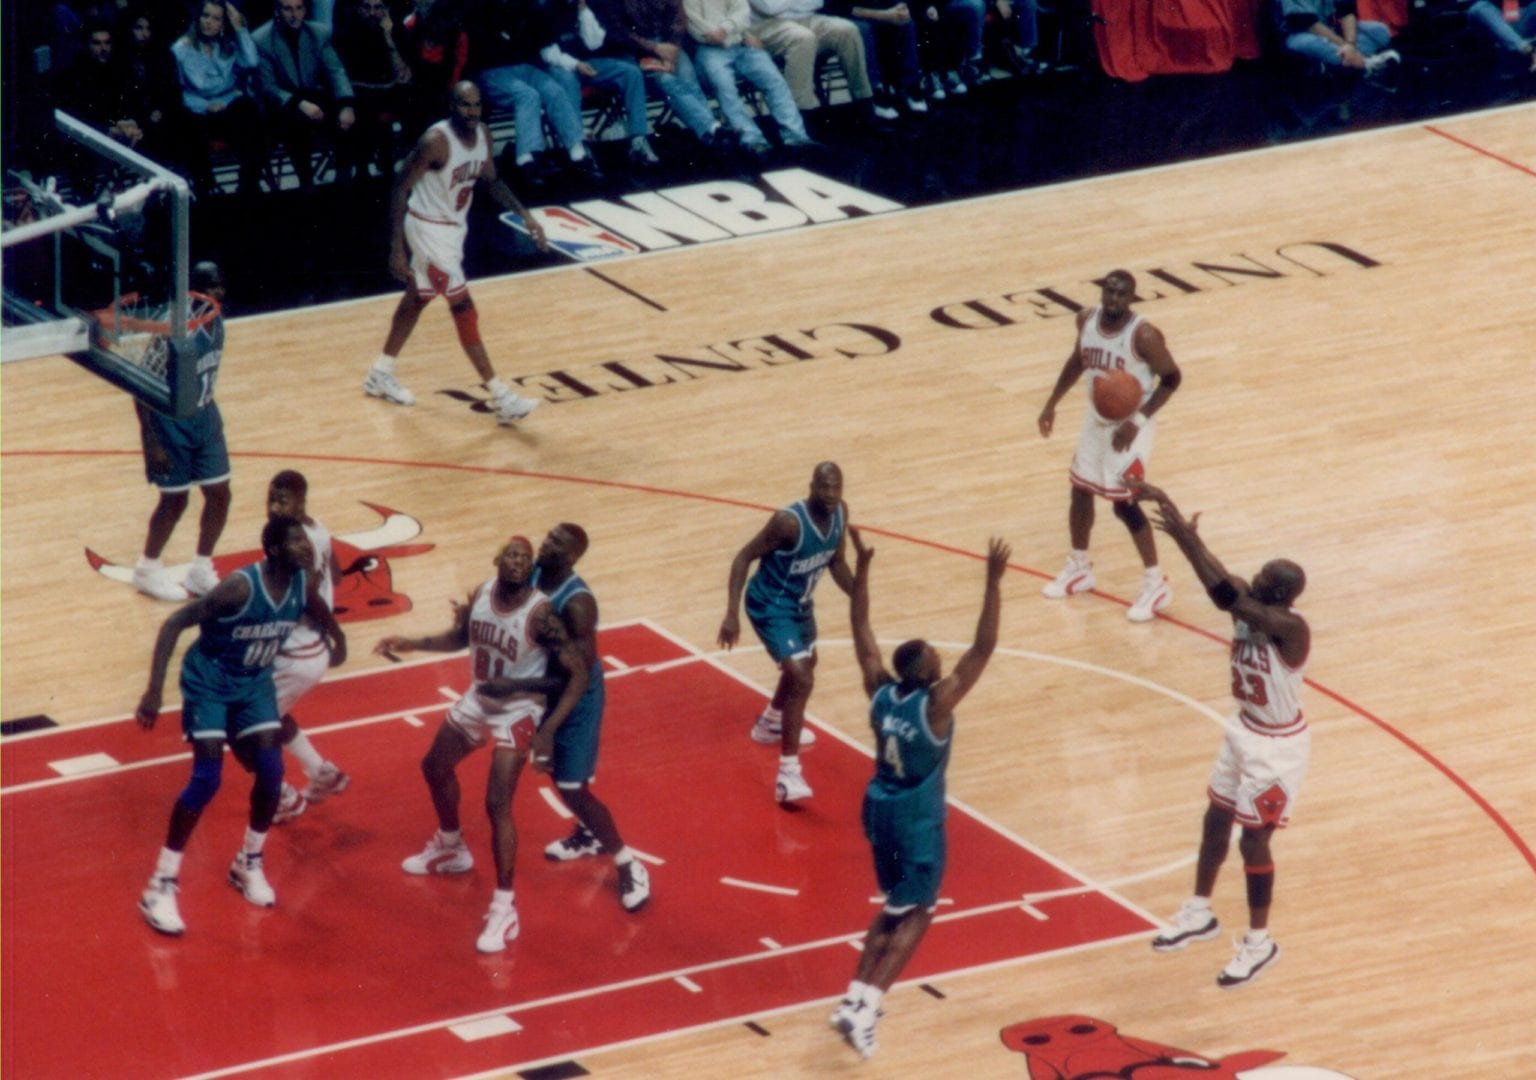 A jump shot of MJ during a basketball game